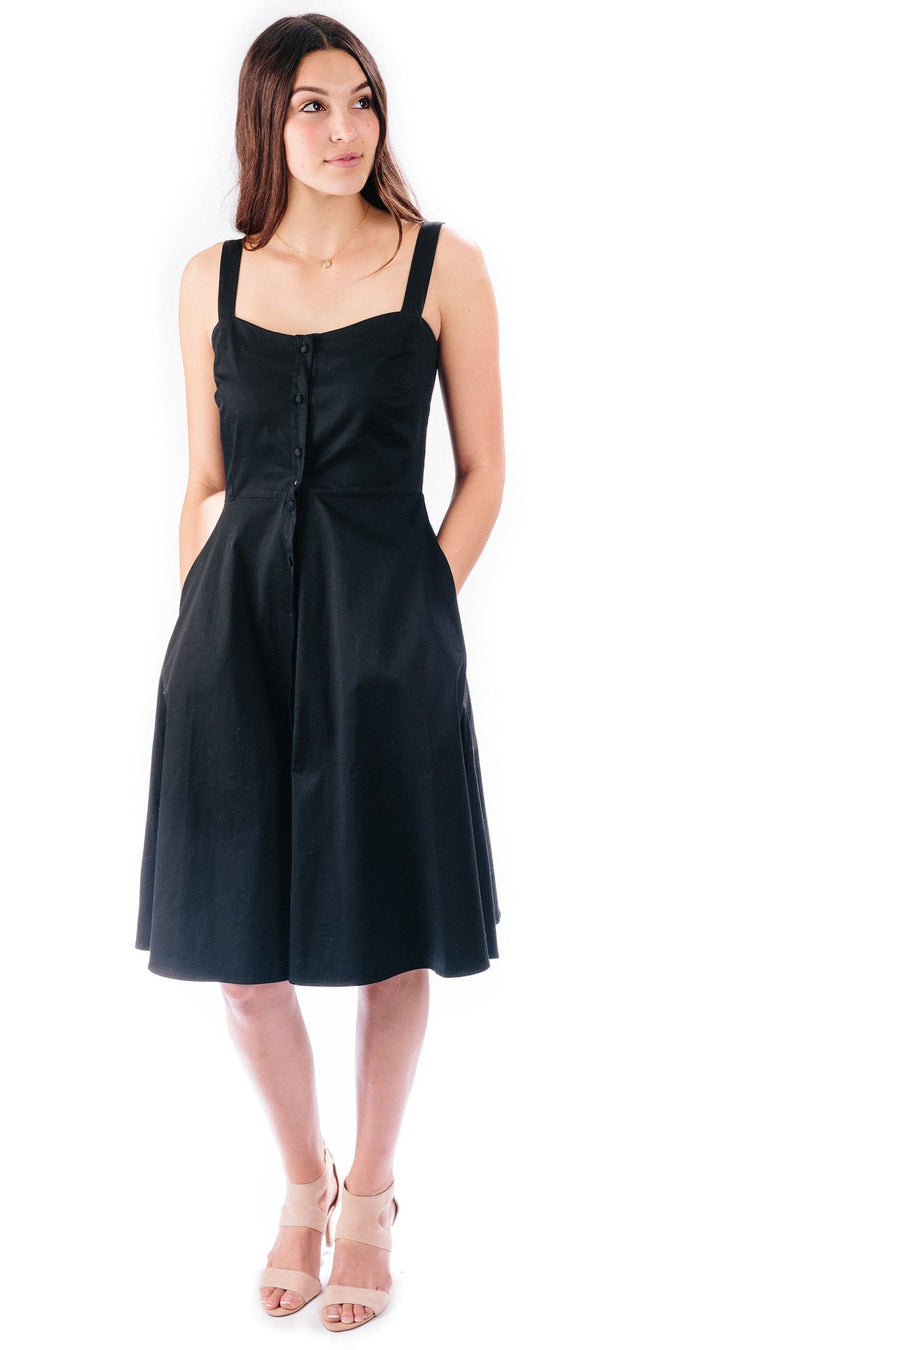 button-down midi dress in ebony